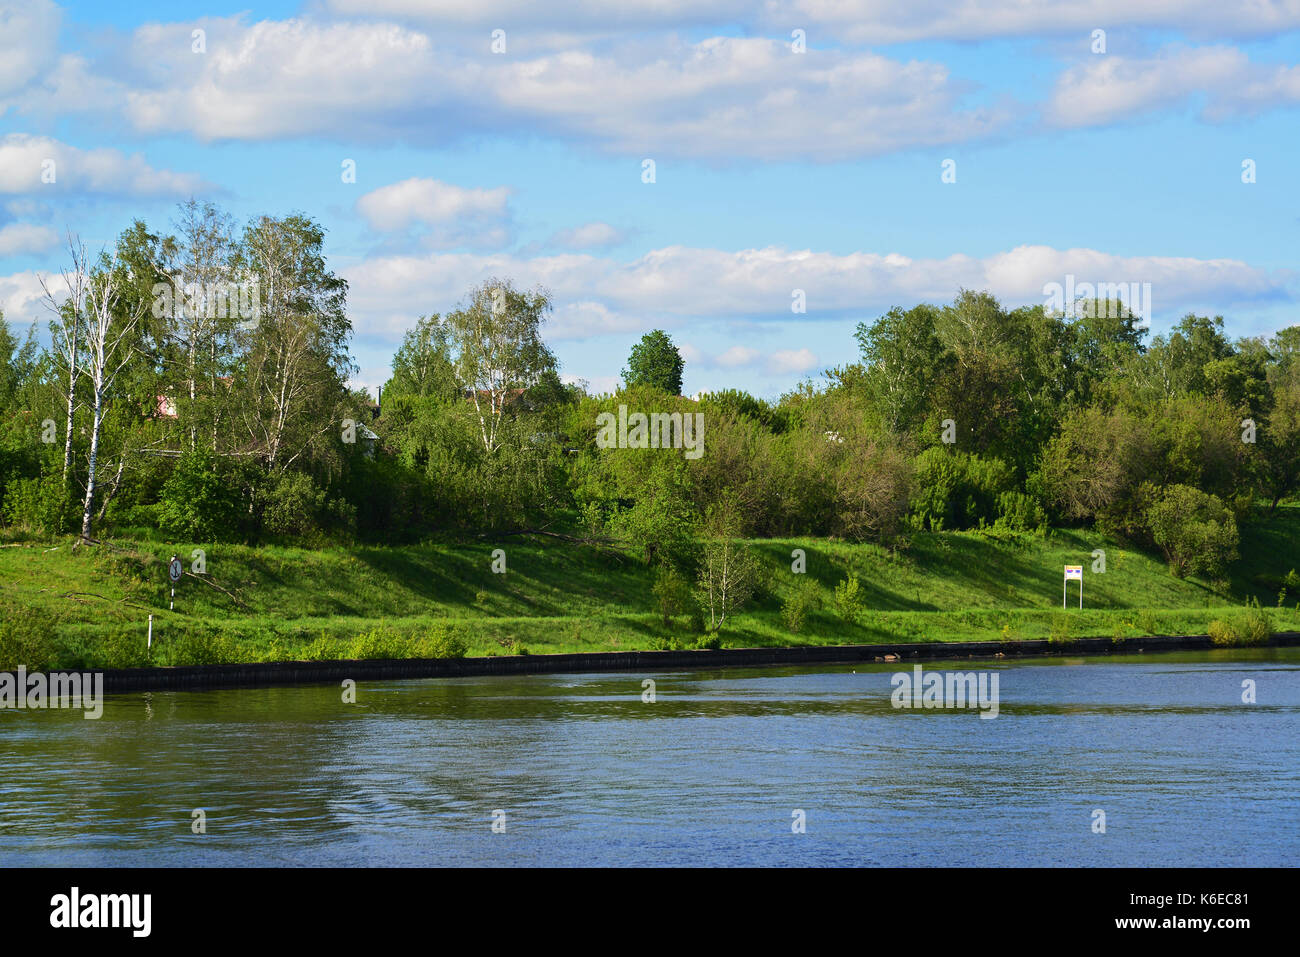 bank of Moscow Canal in Khimki, Russia - Stock Image